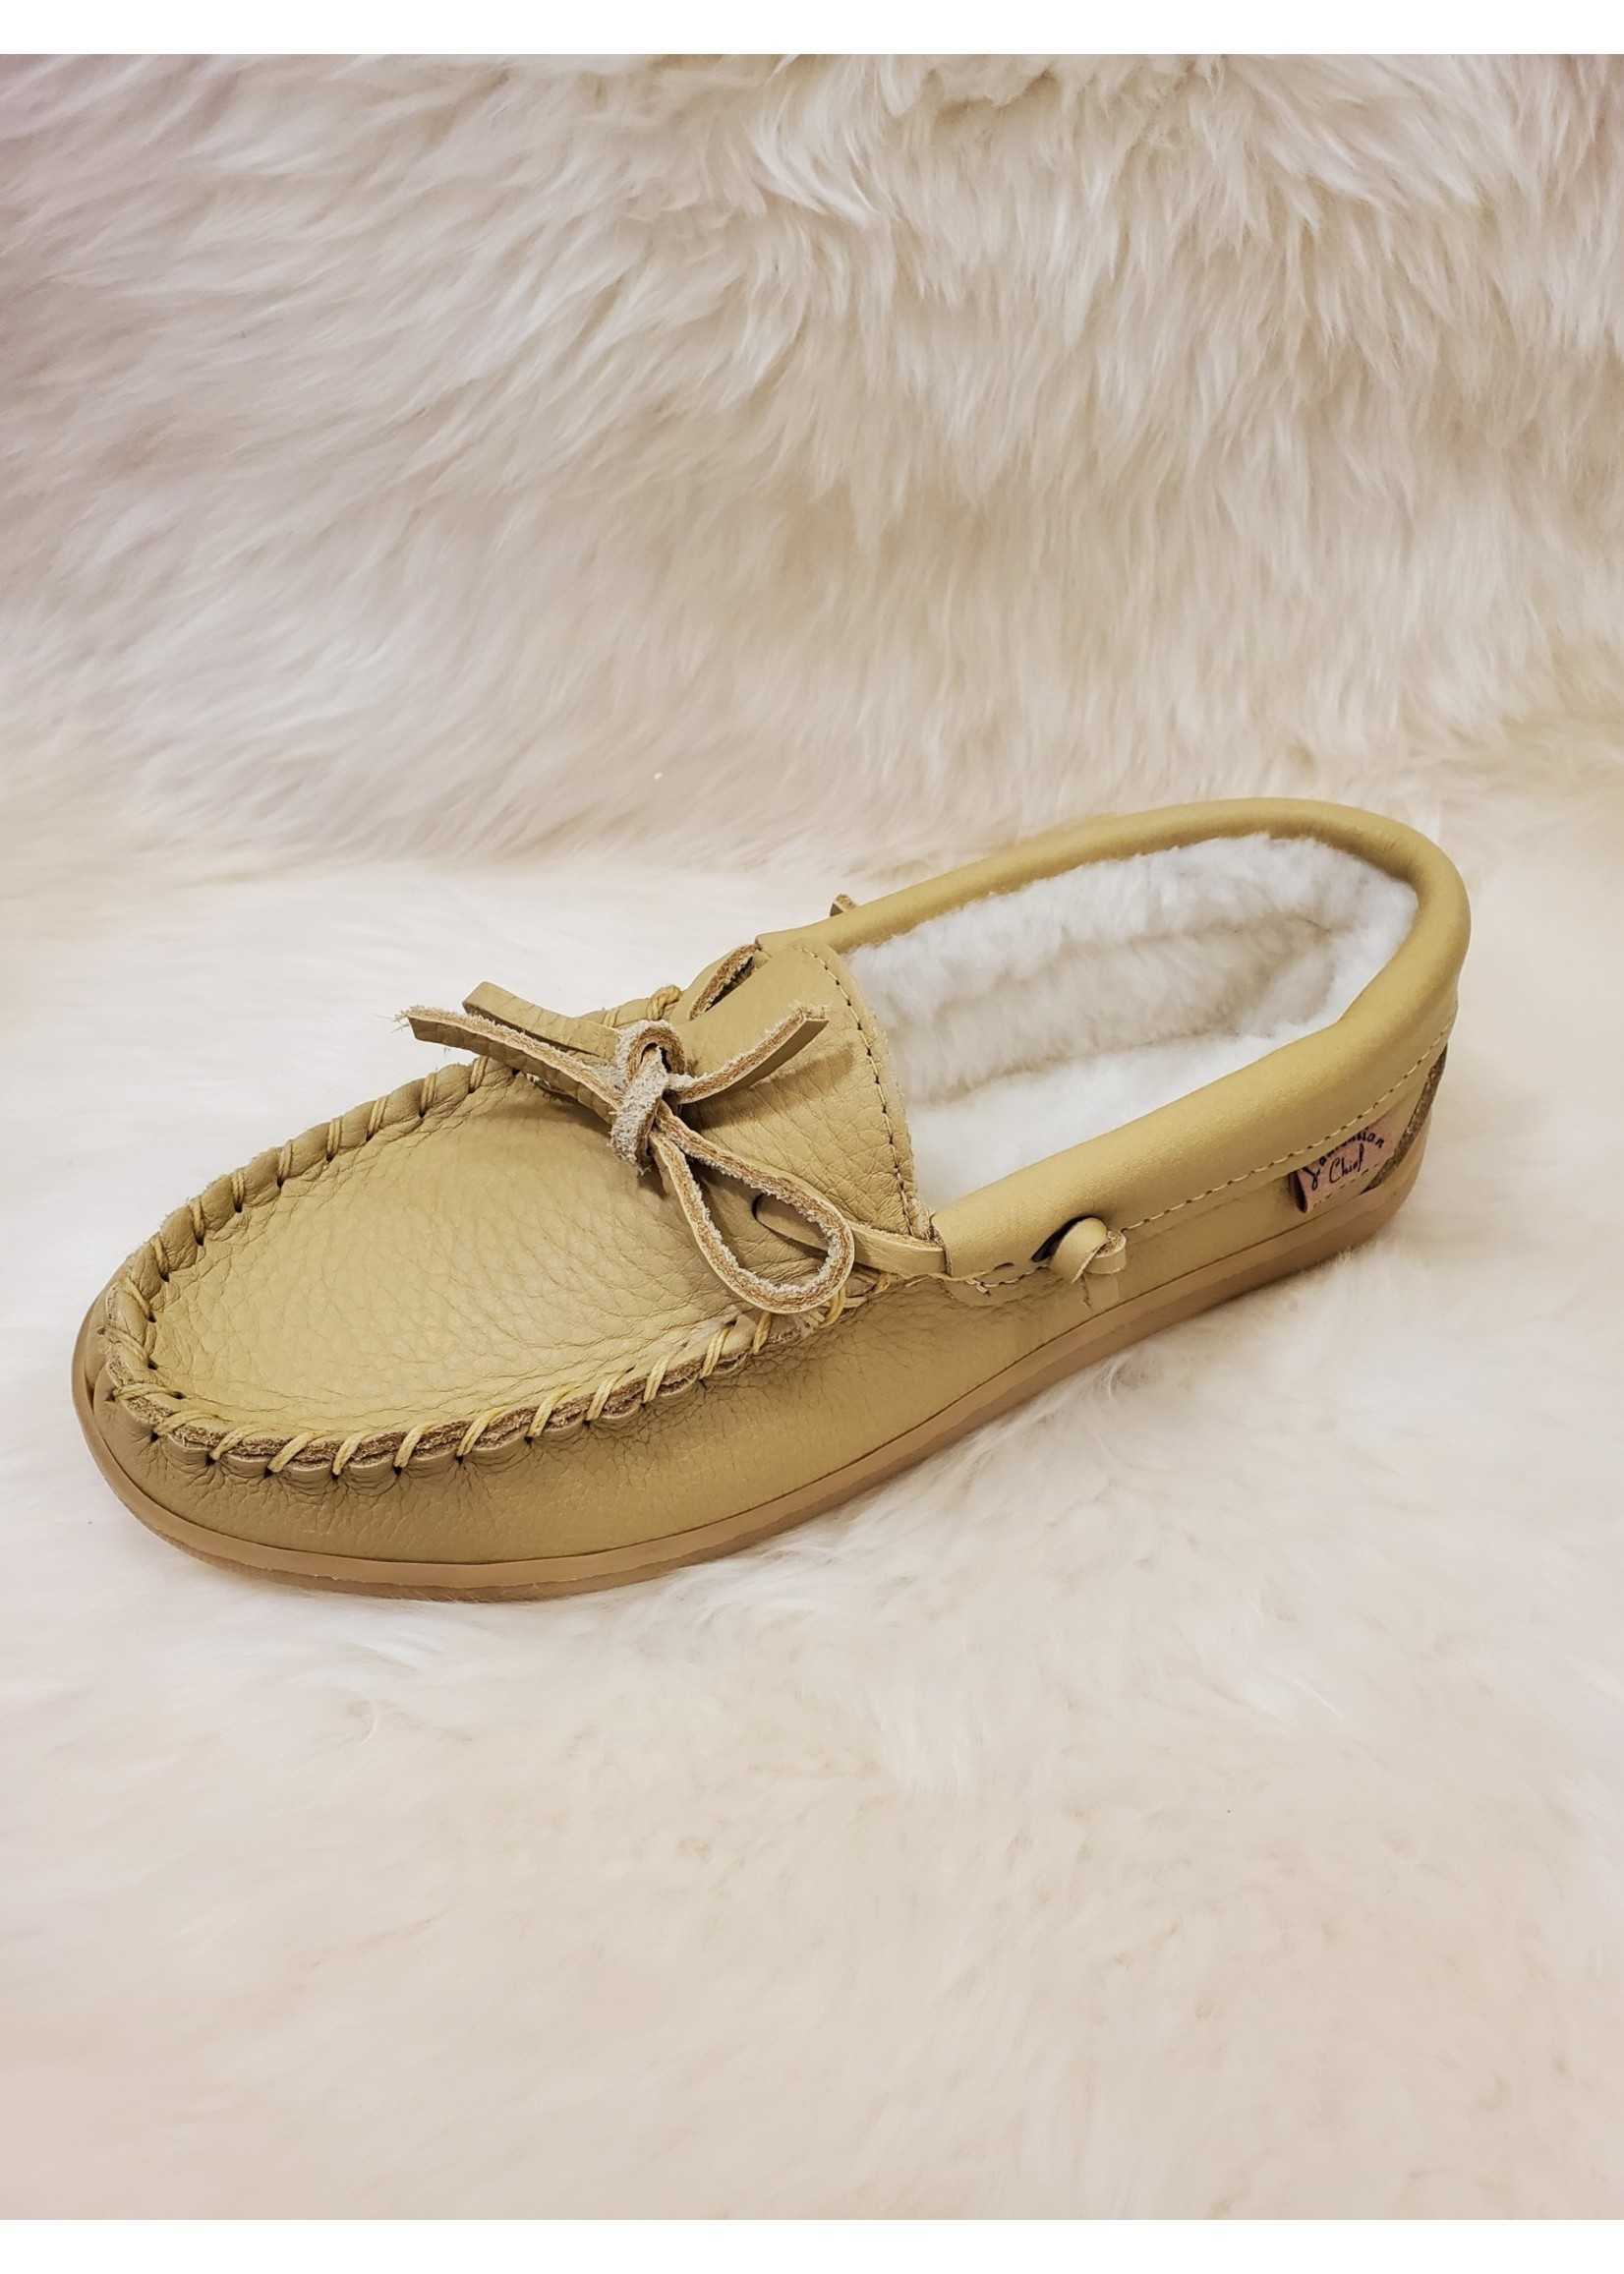 LAURENTIAN CHIEF LEATHER DRIVING MOCCASIN 41121M